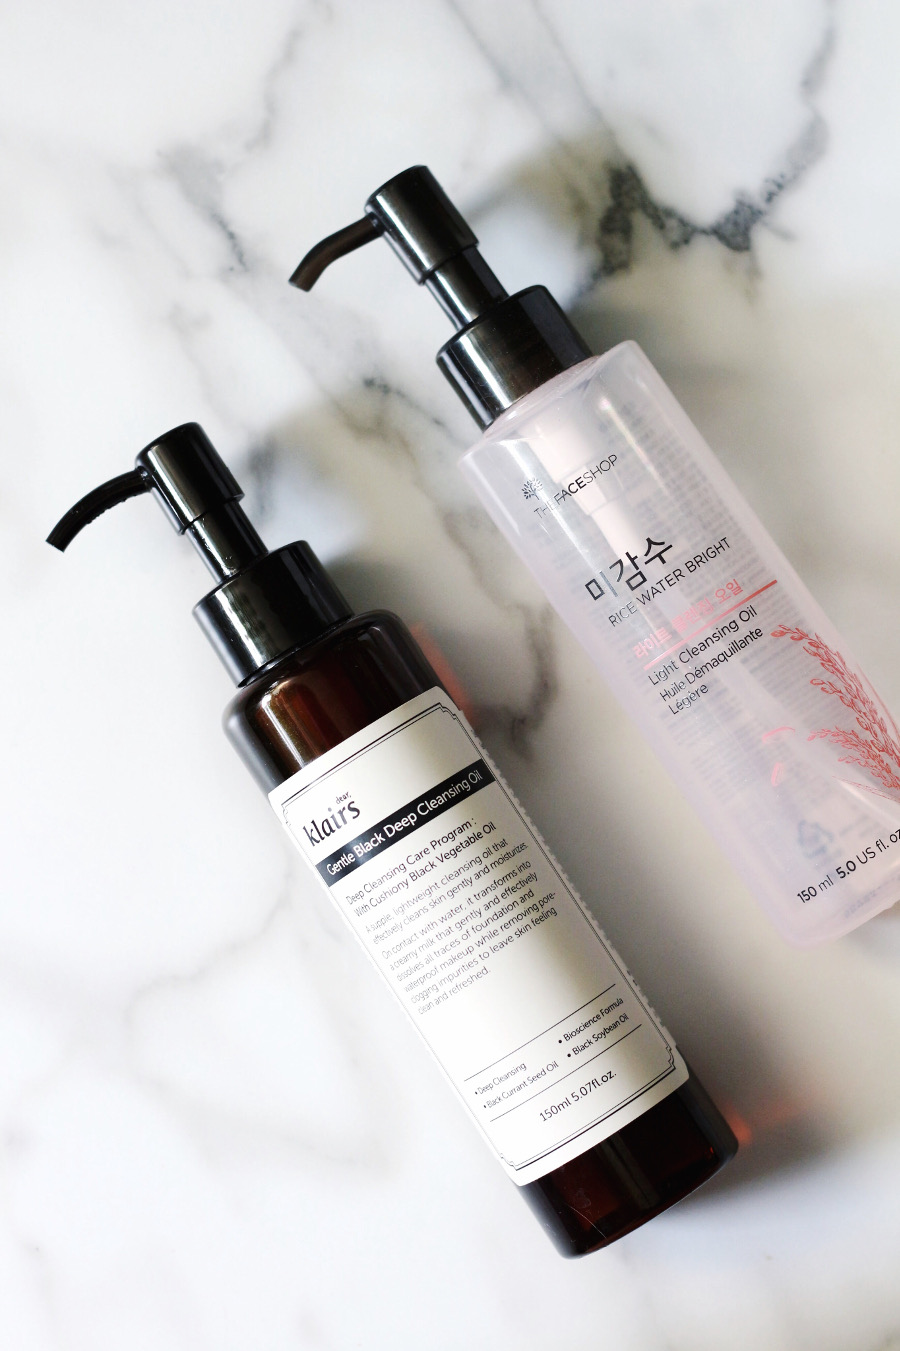 Klairs Black Cleansing Oil and The Face Shop Light Rice Cleansing Oil